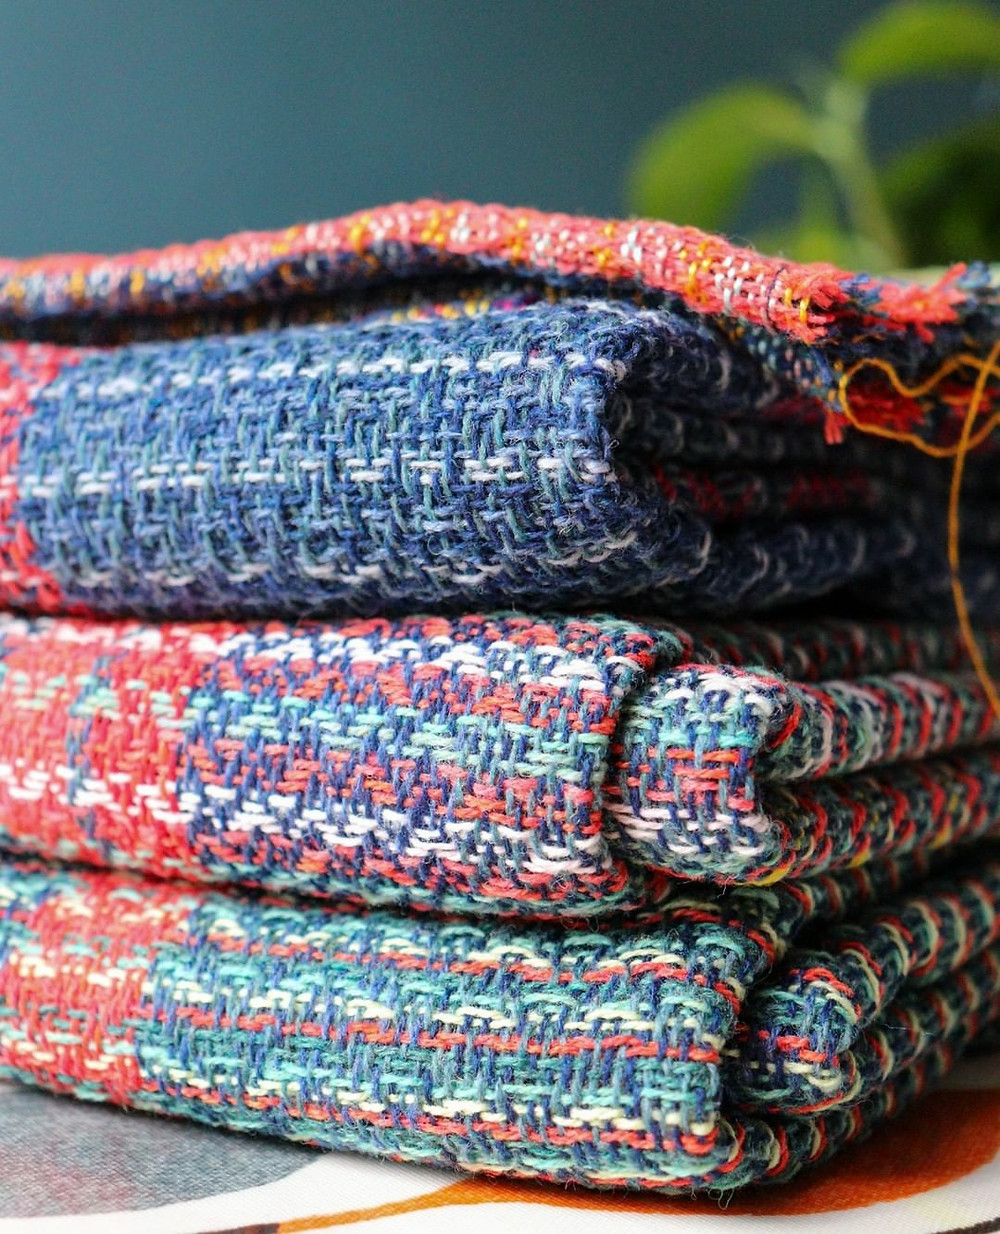 Close up of woven scarves that are folded and sitting on top of each other. They have beautiful weave patterns in red, blue, and mint green.